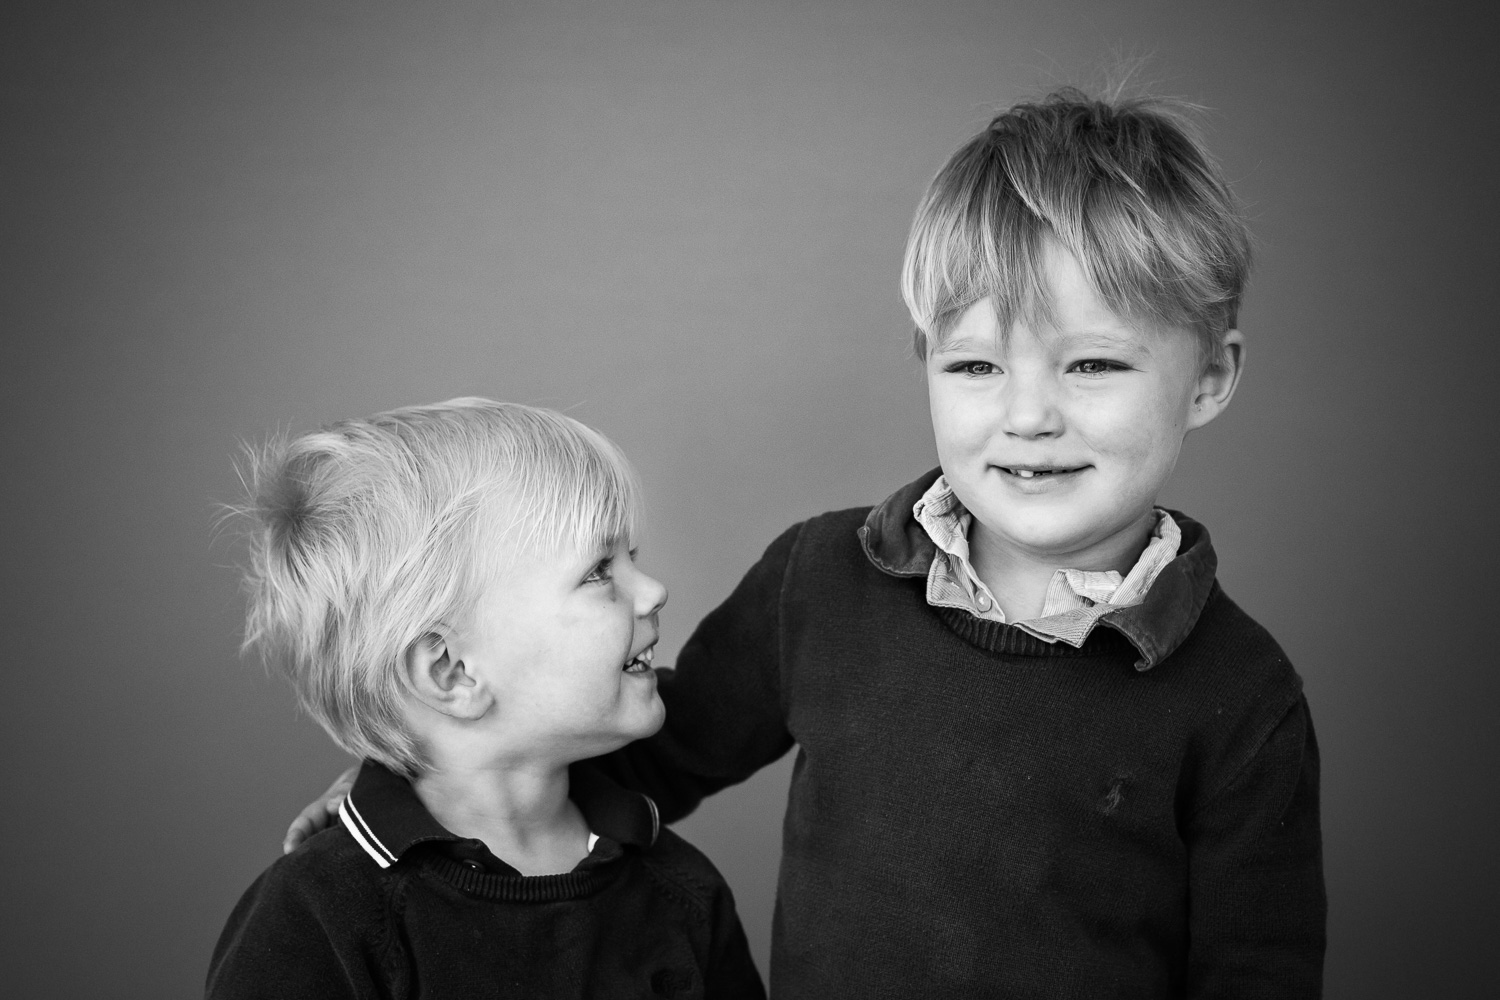 Nursery_Children_Portraits_London_Carla_Monge_Photography_1500px-5.jpg